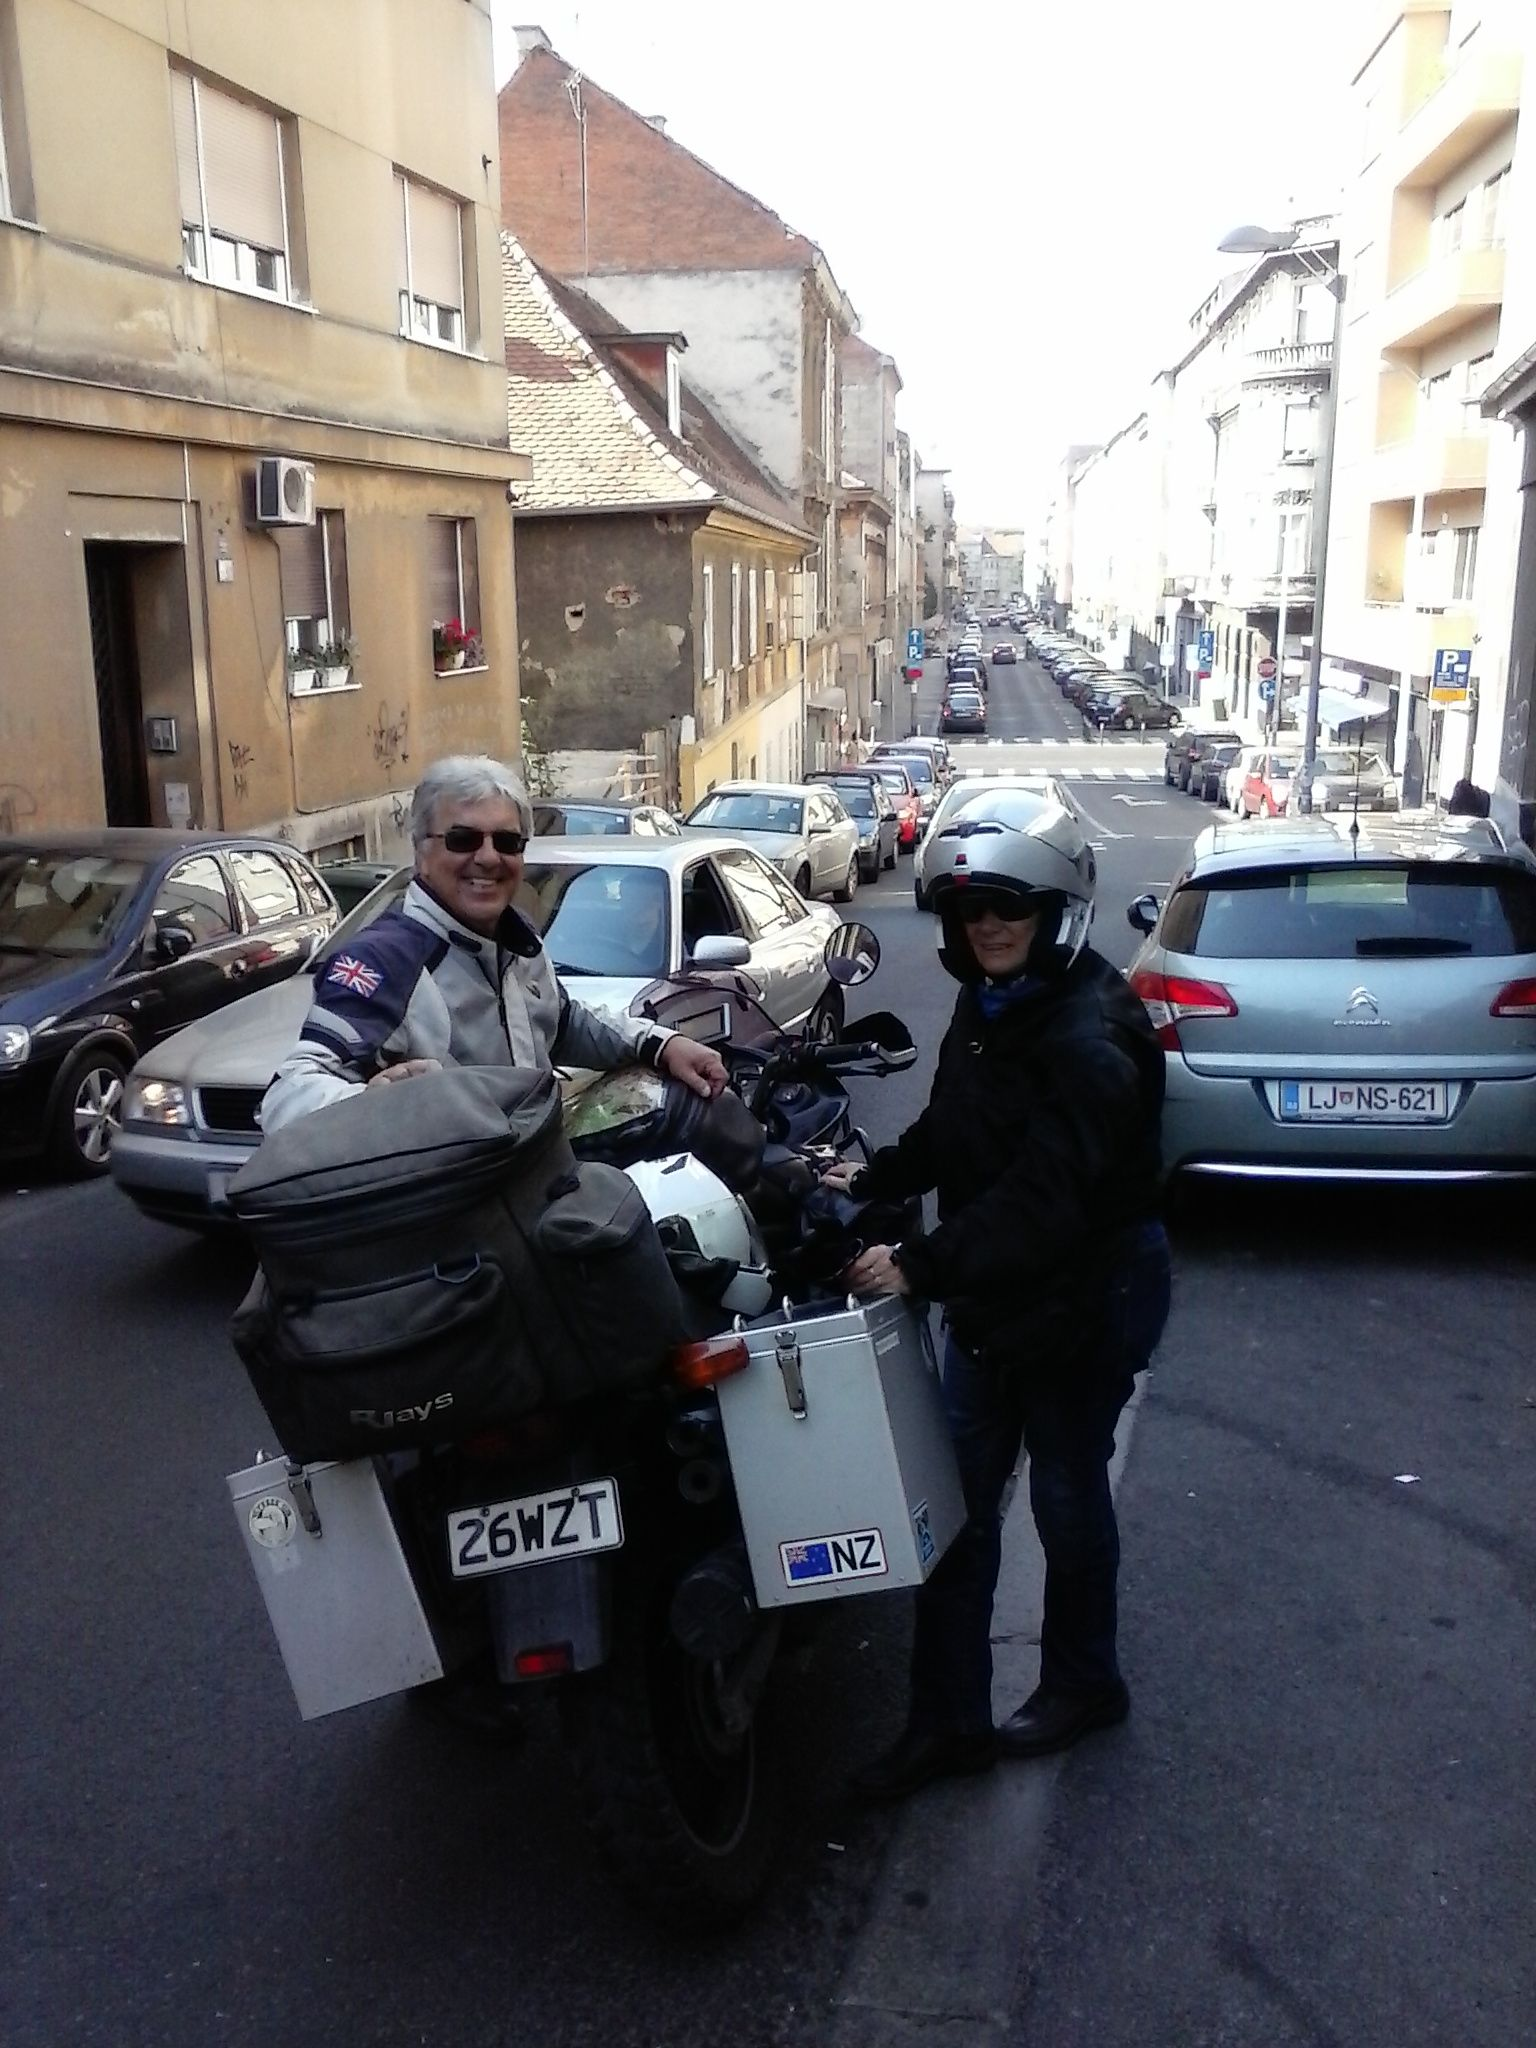 Smile on their faces says it all (Kieth is our old mate). Well rested and ready to continue the trip to UK. Lobagola B&B at your service: http://www.lobagola.com/tours-and-services/services/ #lobagolabnb #zagreb #center #croatia #advrider #rider #motorcycle #bike #cycling #travel #travelerschoice2015 #adventurer #traveler #overland #globaltraveler #overlanding #ktm #bmw #ktmadv #bmwgs #natgeo #visitcroatia #visitzagreb #yellowelephantpath